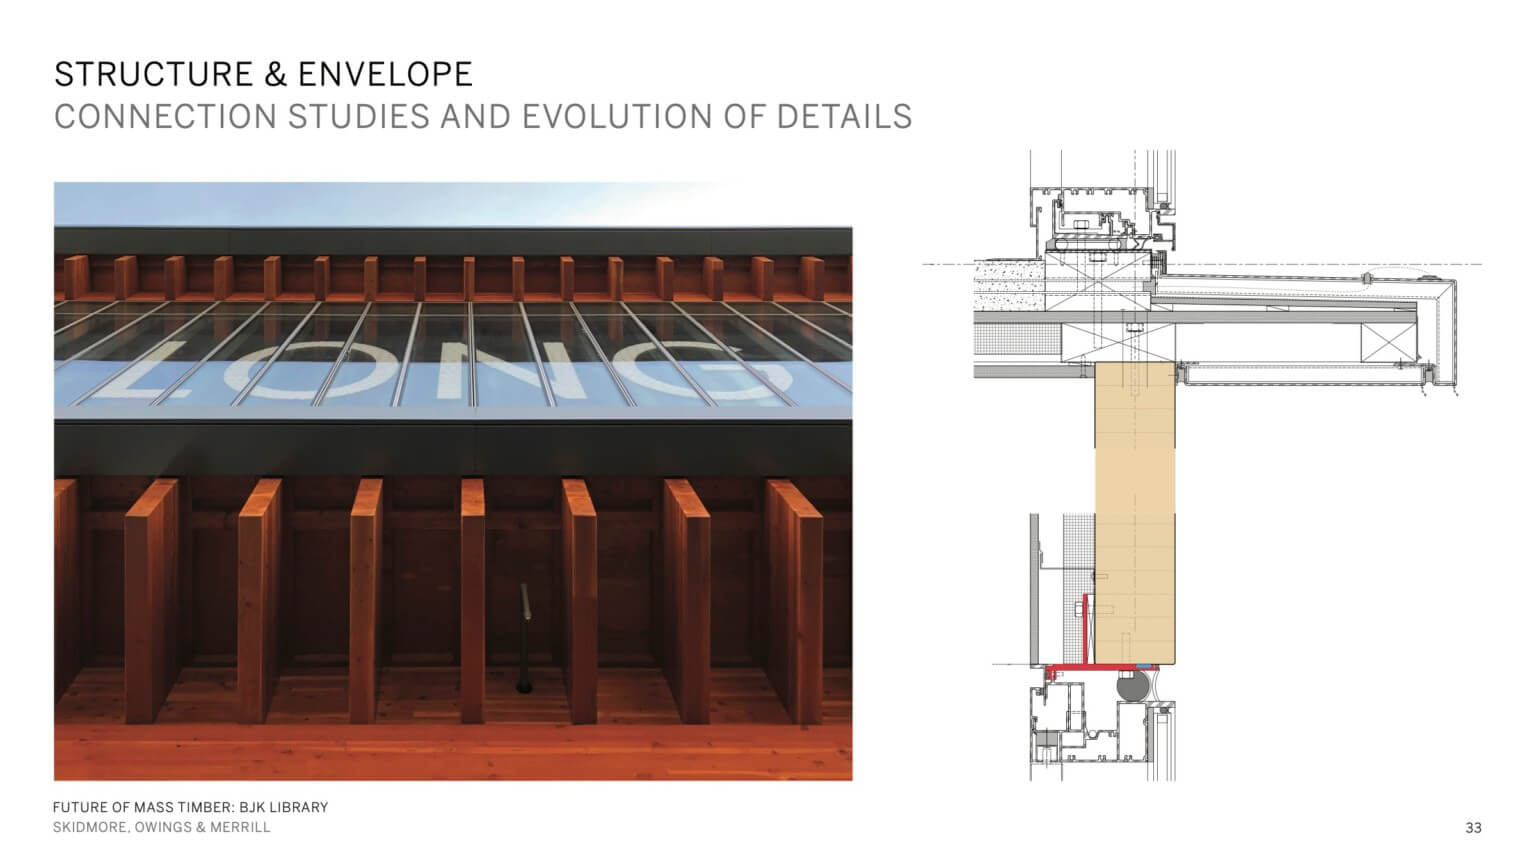 20200924_The-Future-of-Mass-Timber-V3.5-BJK-Library-FINAL-V2-3-1536x864